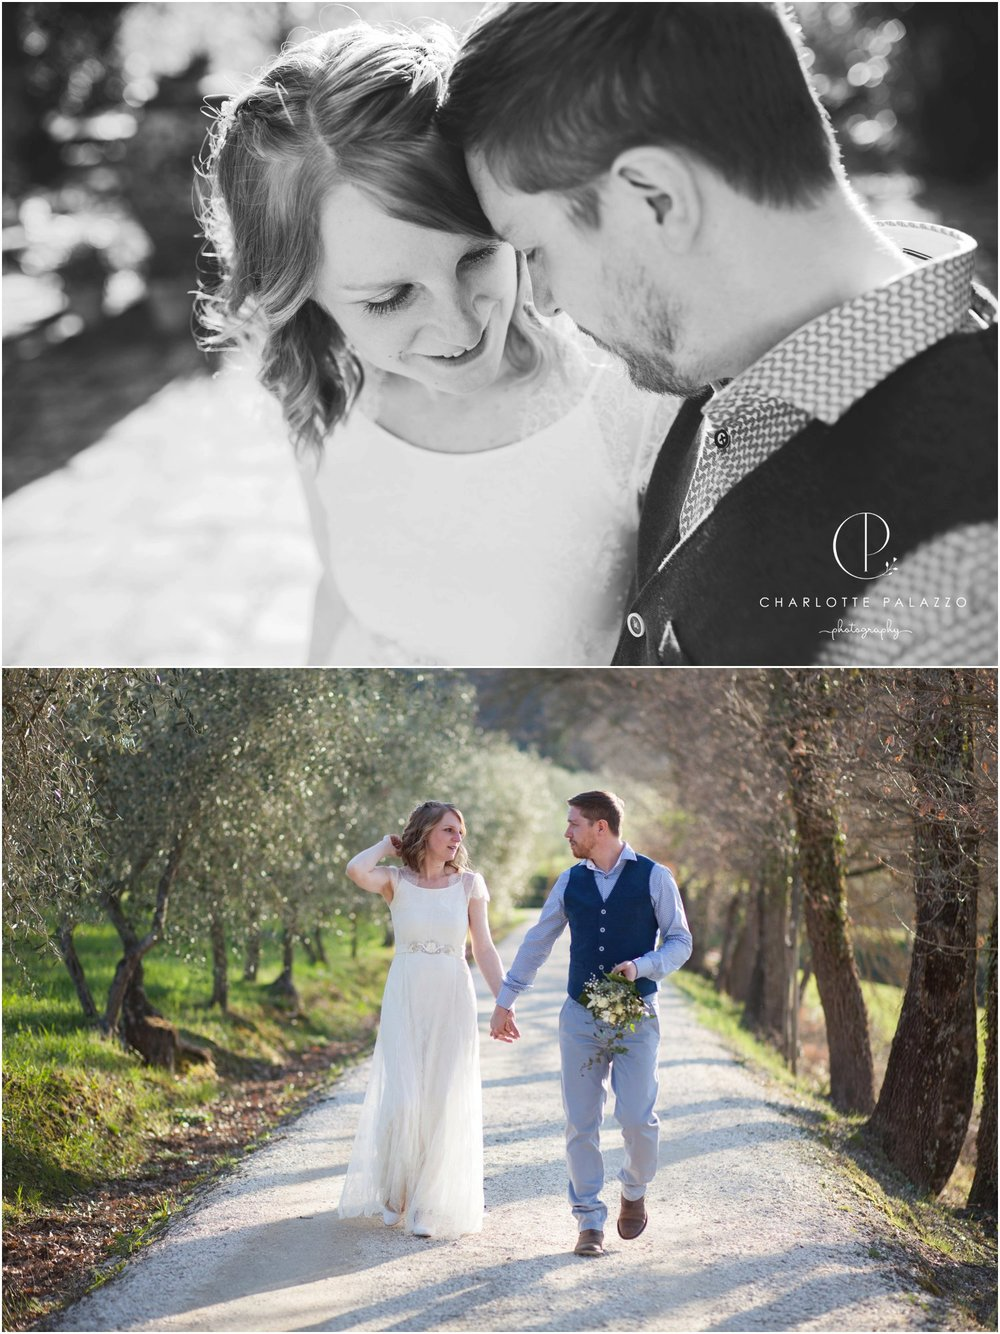 Destination_Wedding_Photographer_Florence_Italy_Tuscany_Locanda_Casanuova_Rustic_Wedding_0031.jpg